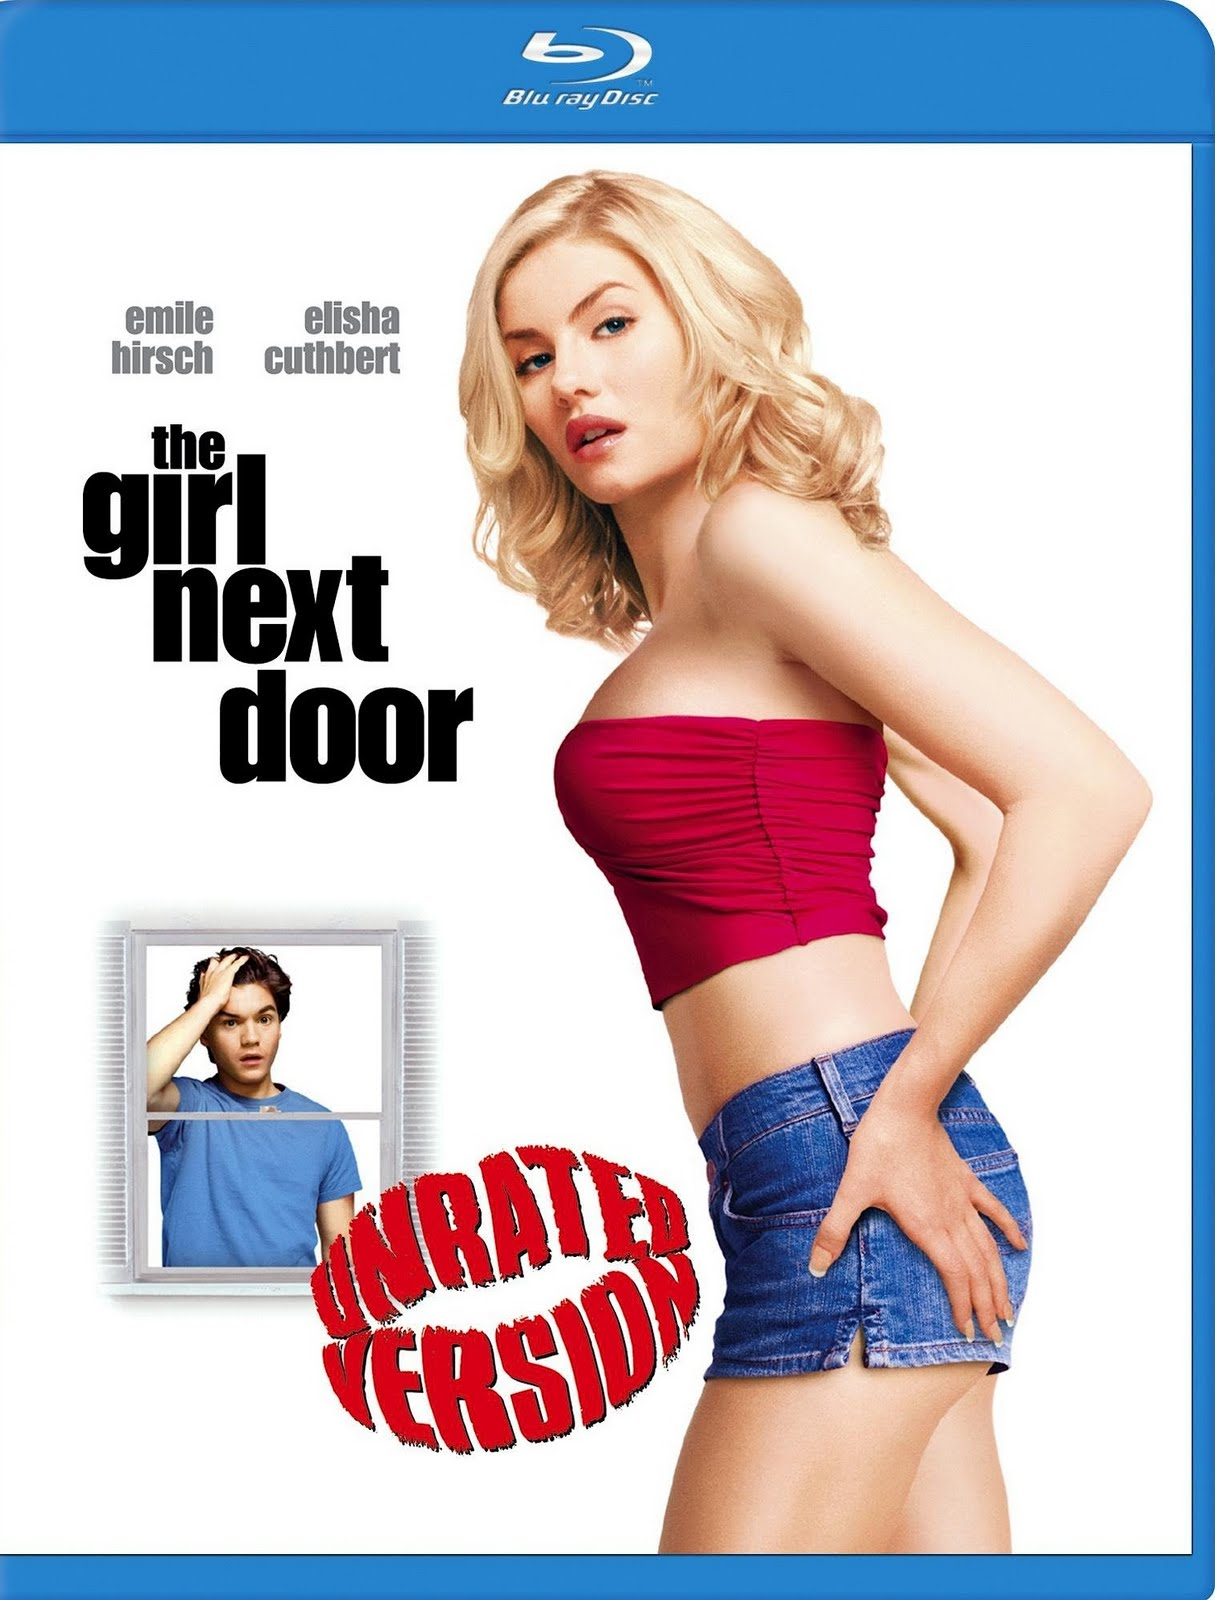 http://1.bp.blogspot.com/_E5qsKlah67o/TIx2Ze1dpNI/AAAAAAAAAf0/9ZyoJQRySD0/s1600/girl-next-door-the-blu-ray.jpg